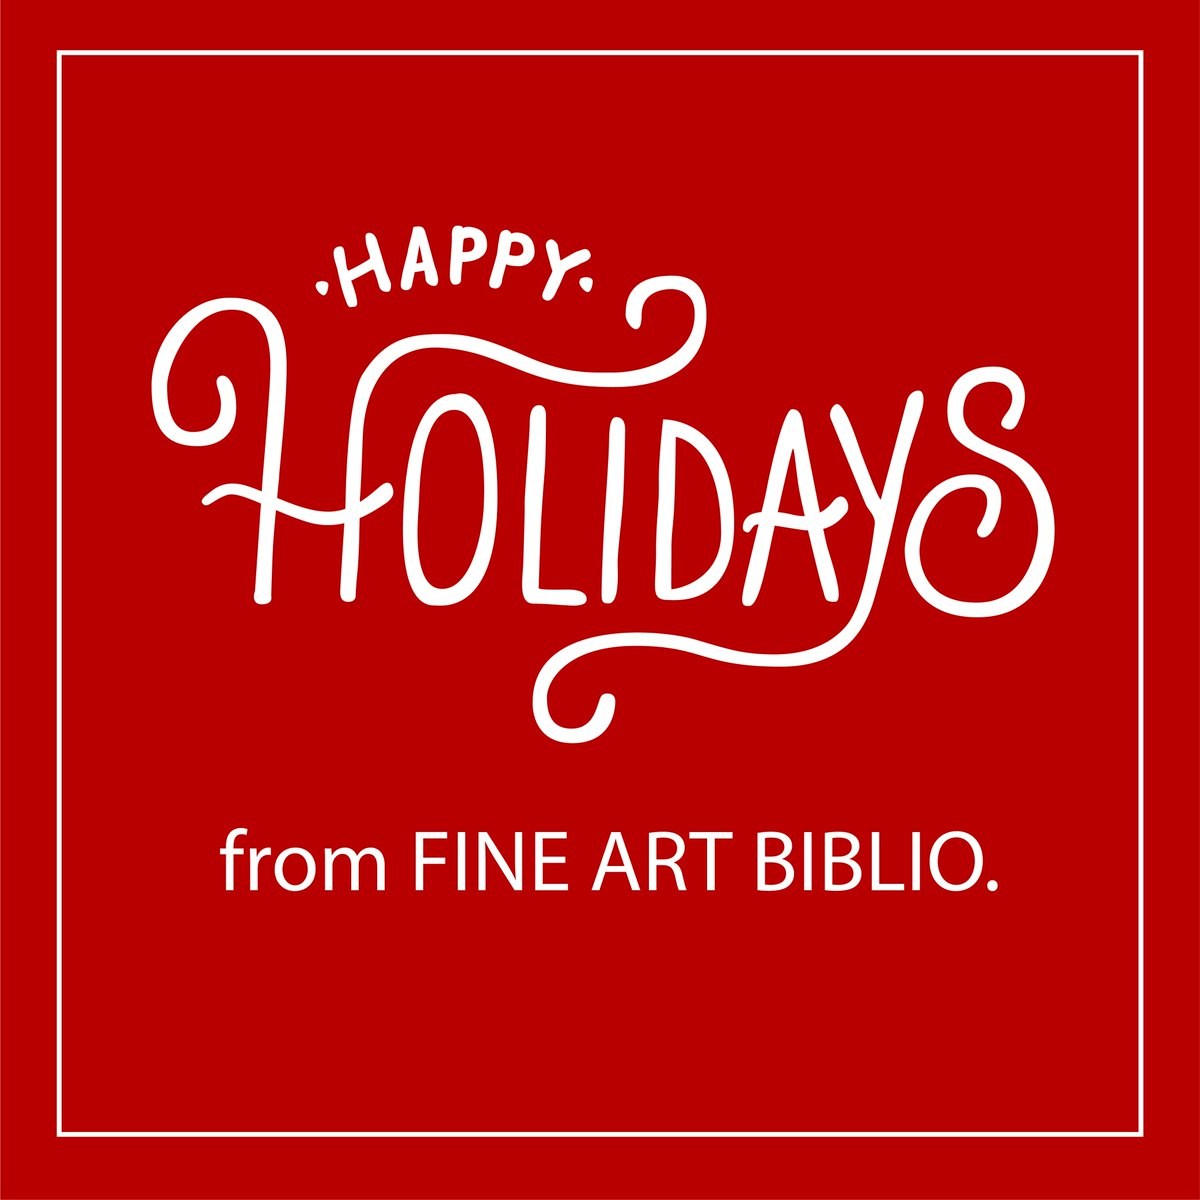 Fine Art Biblio On Twitter Fine Art Biblio Wishes You And Your